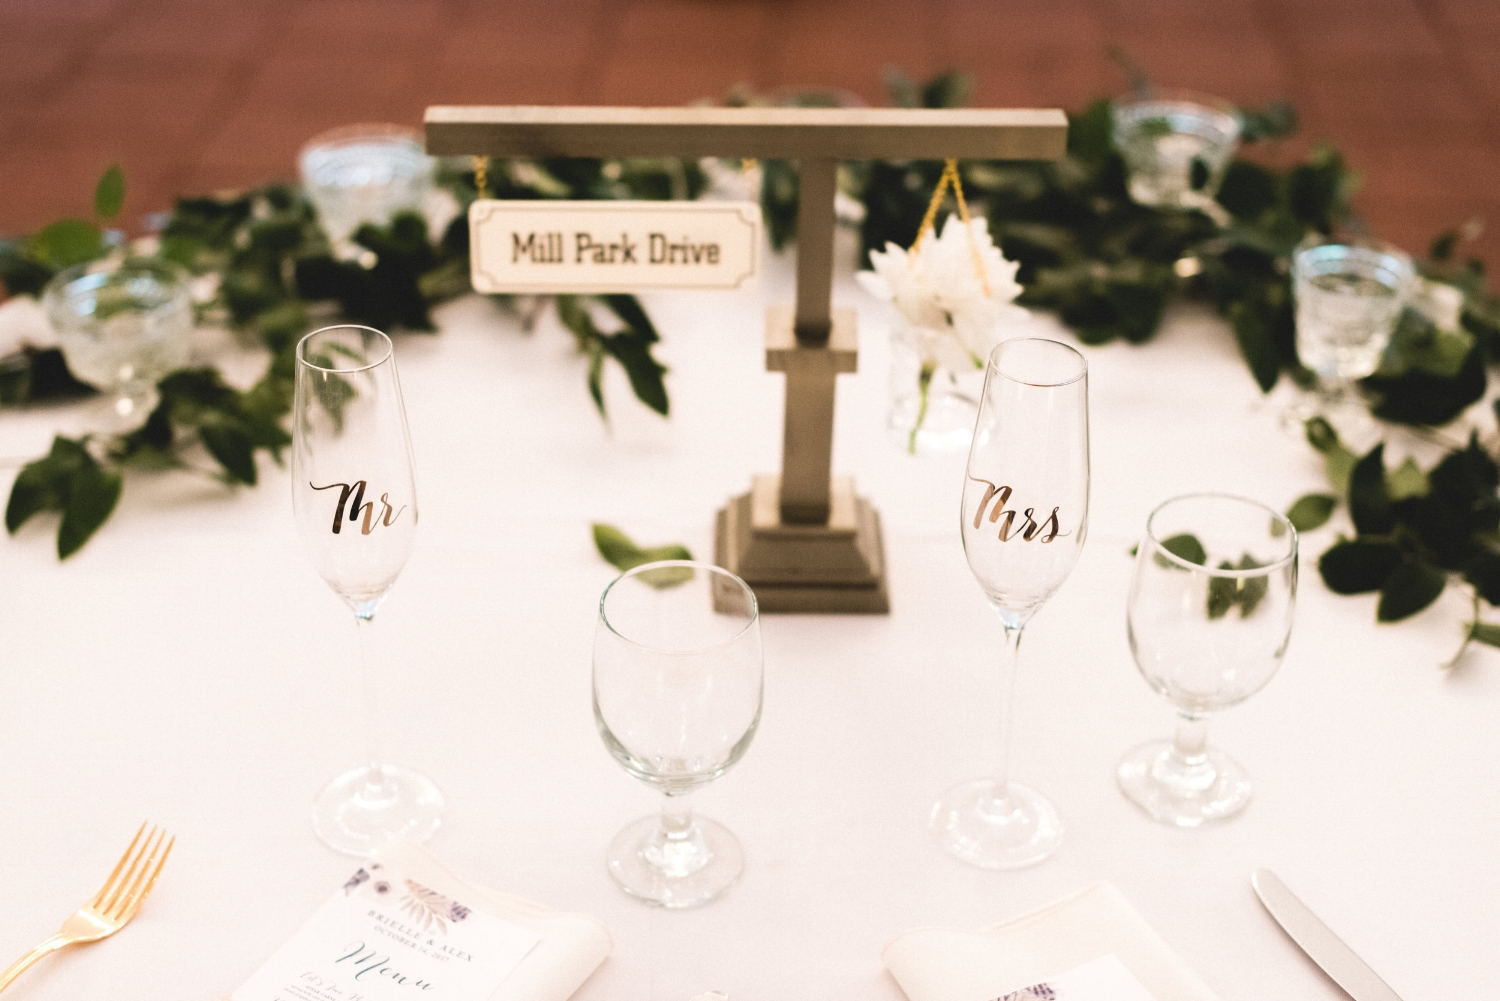 A special street sign was made for the bride and groom table.